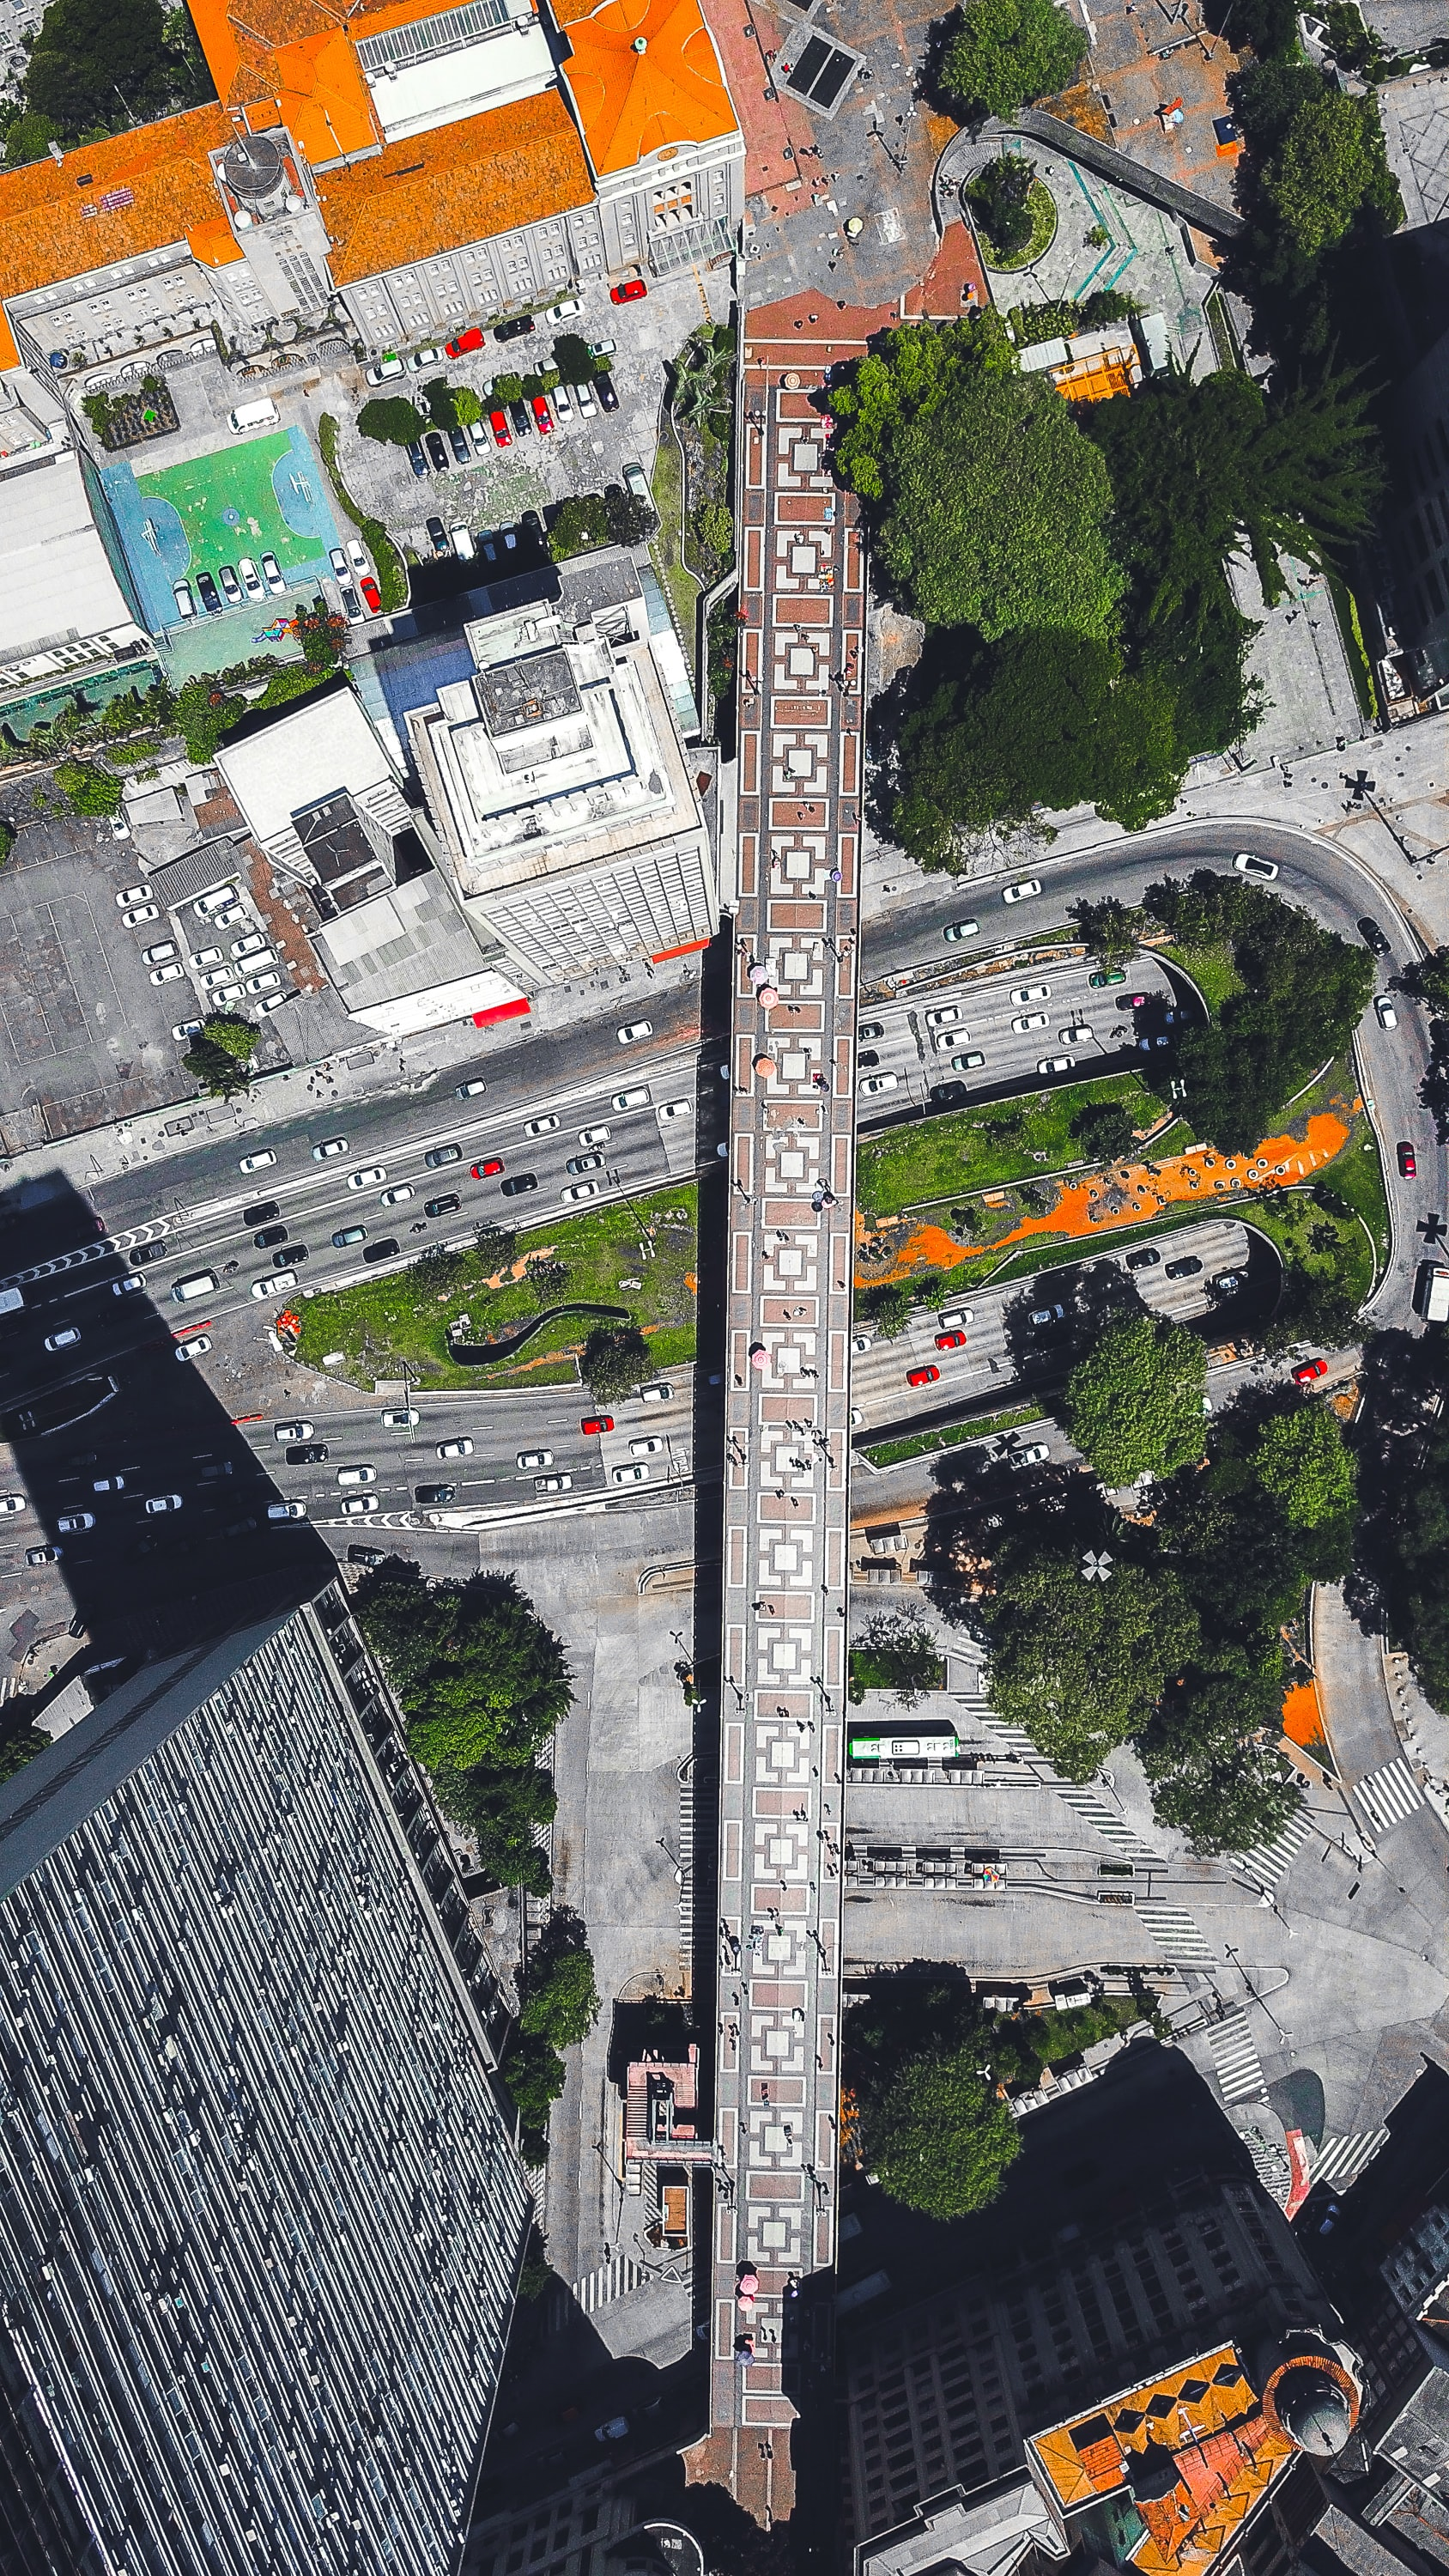 aerial photography of buildings and roads